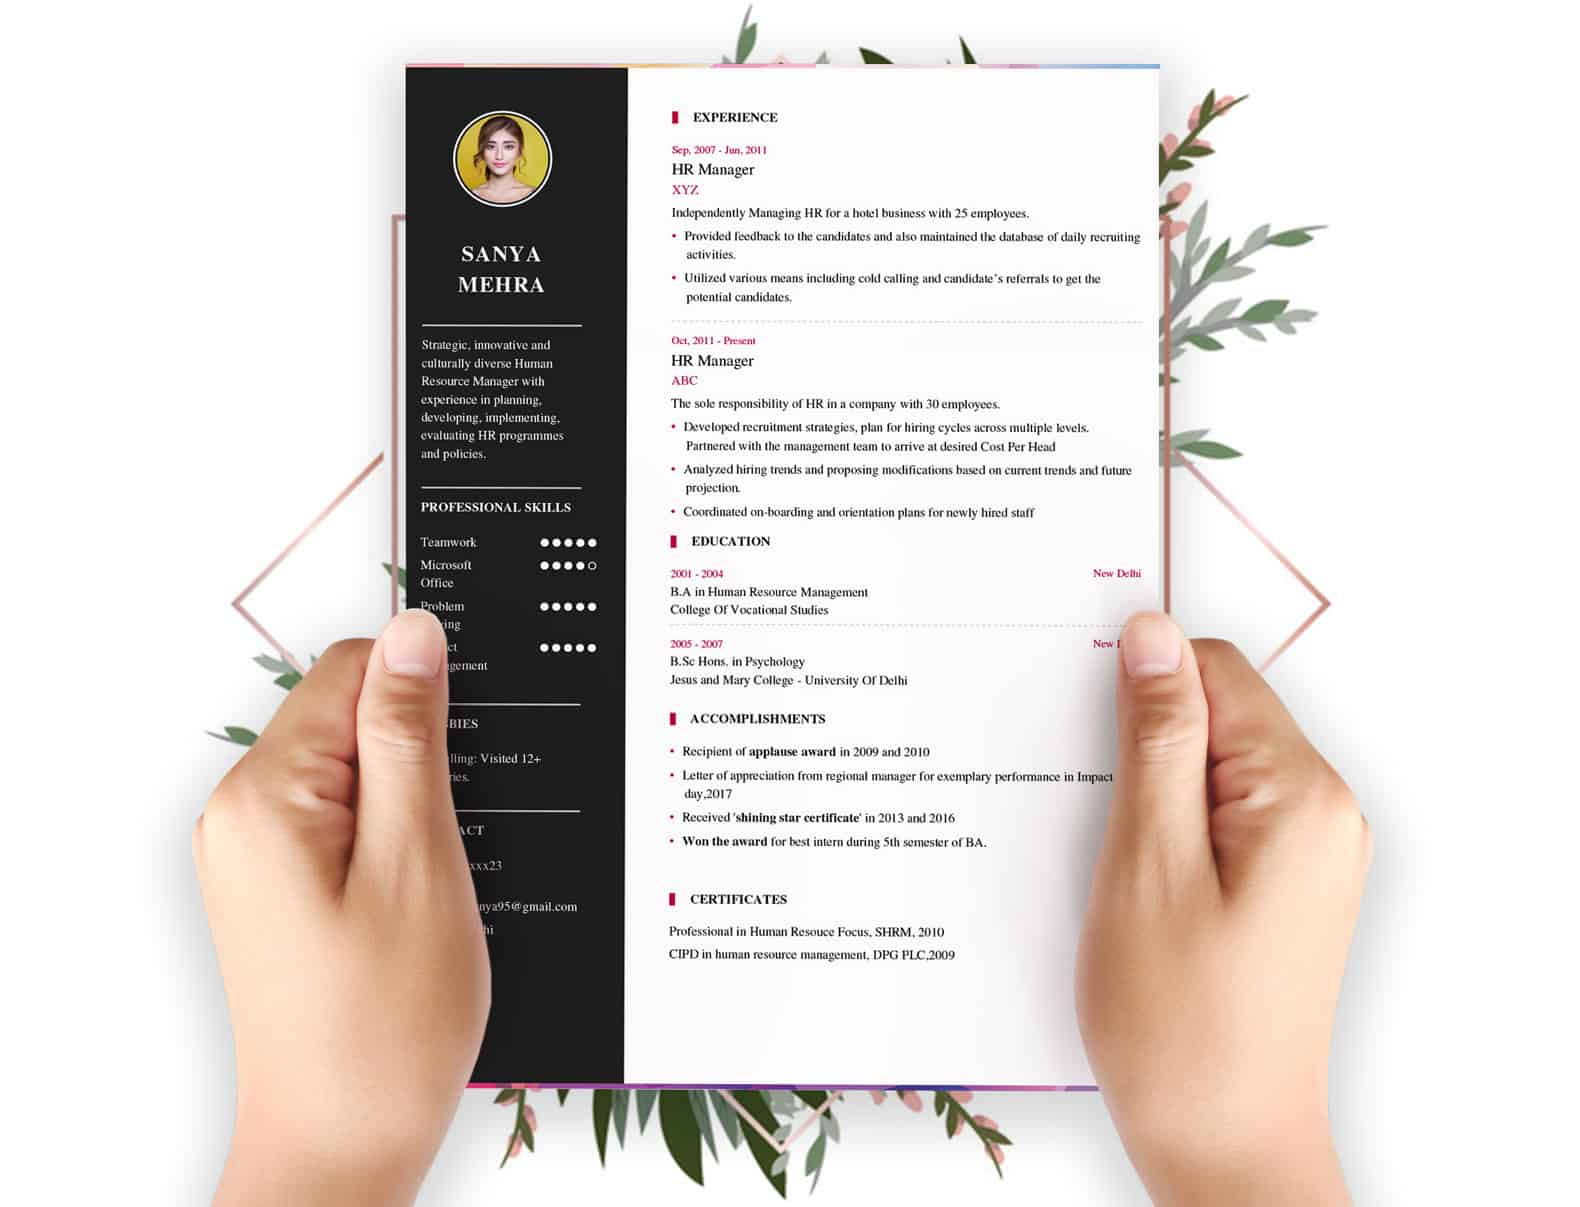 resume builder my format free and job board template nau help coraline agile project Resume Free Template Resume Builder